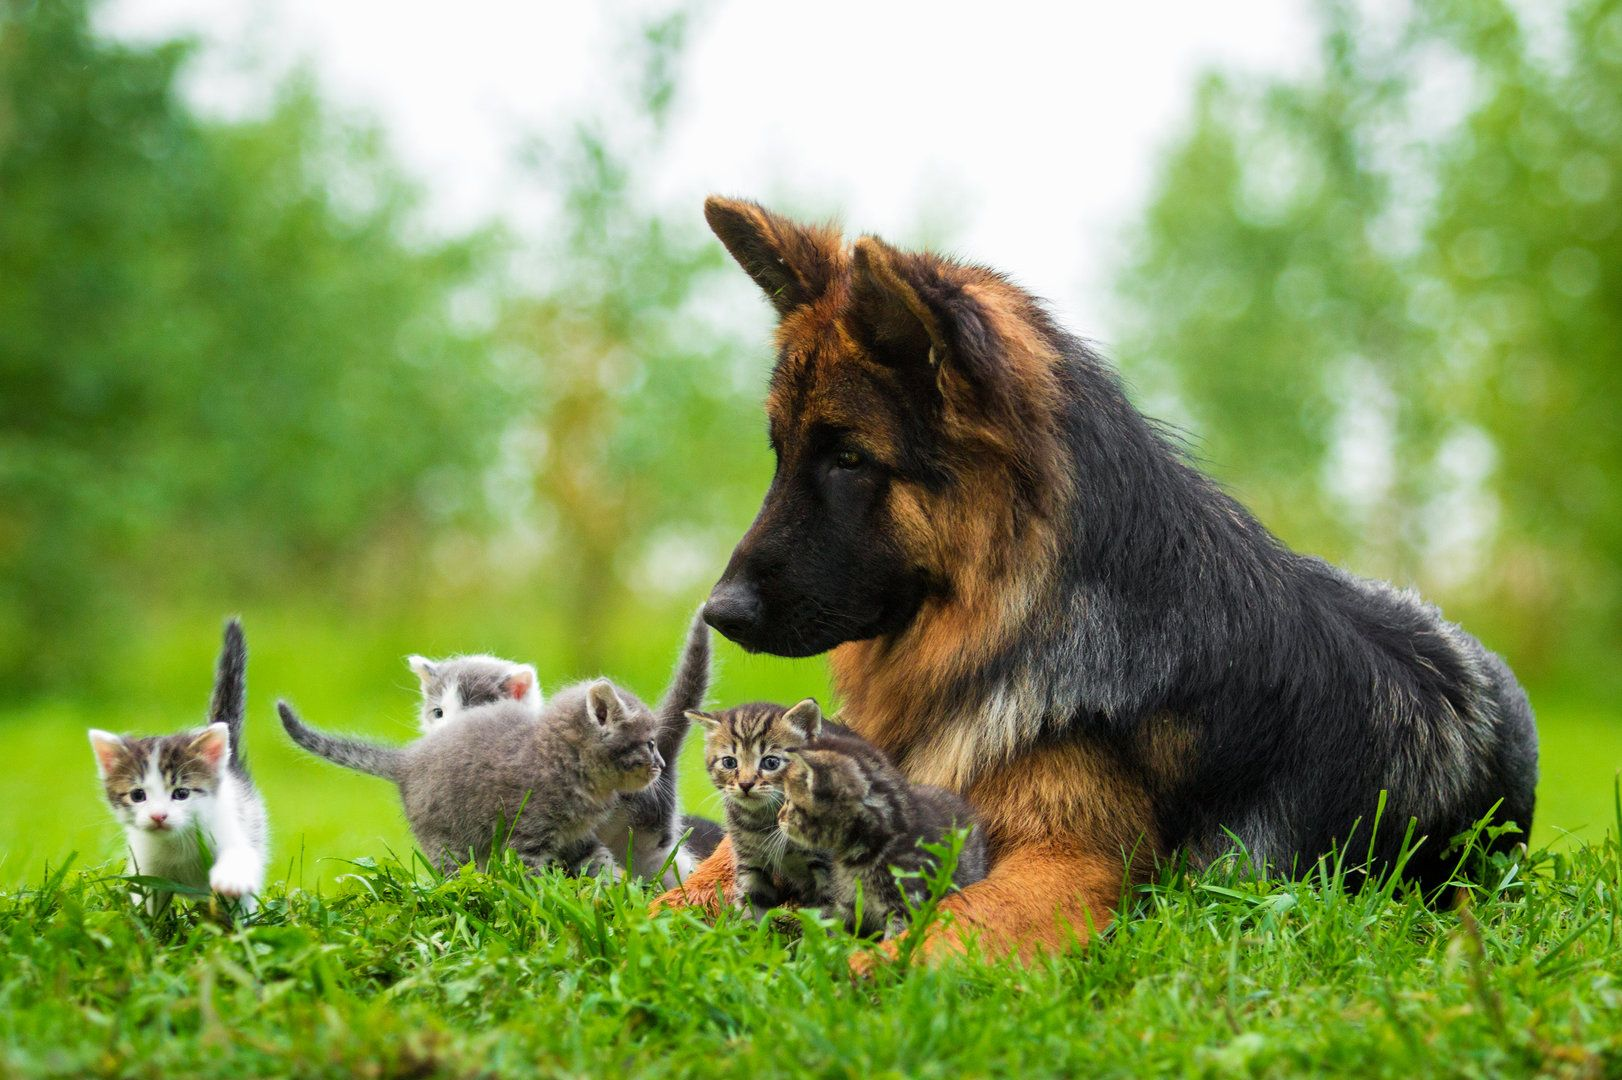 German Shepherd Dog Protecting Kittens Dog Cat Pictures Cute Animals Kittens And Puppies